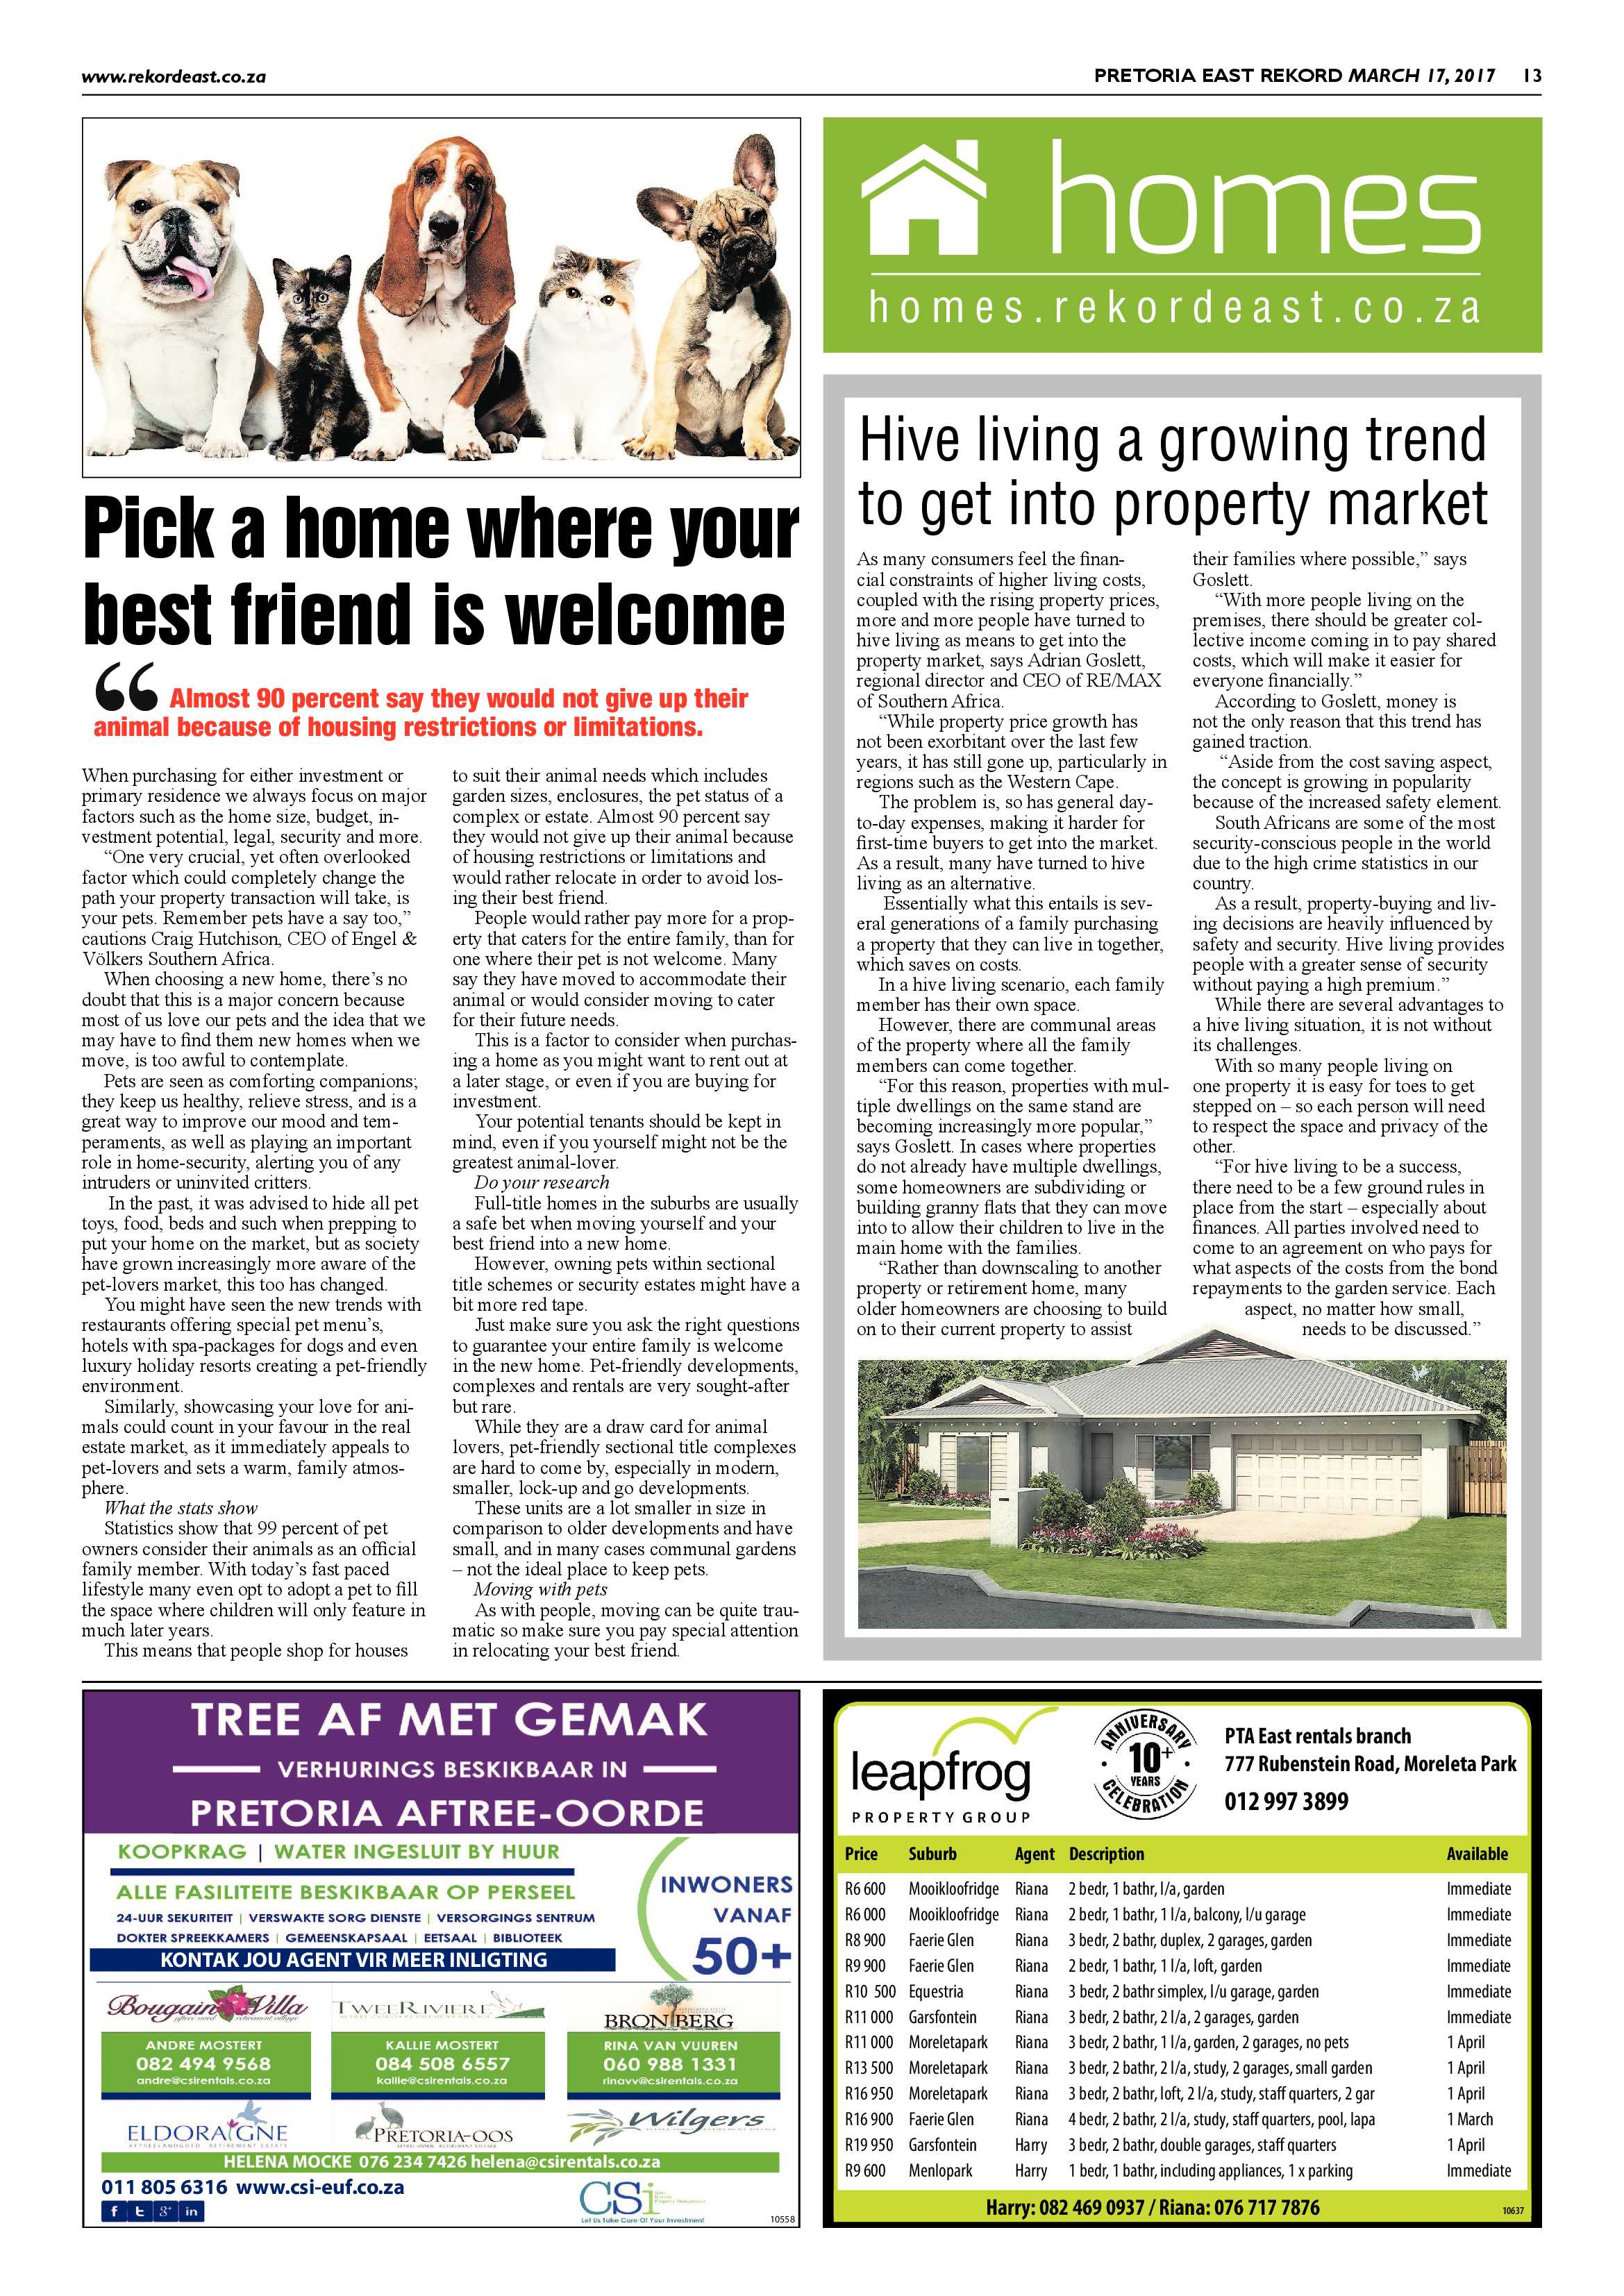 rekord-east-17-march-2017-epapers-page-13